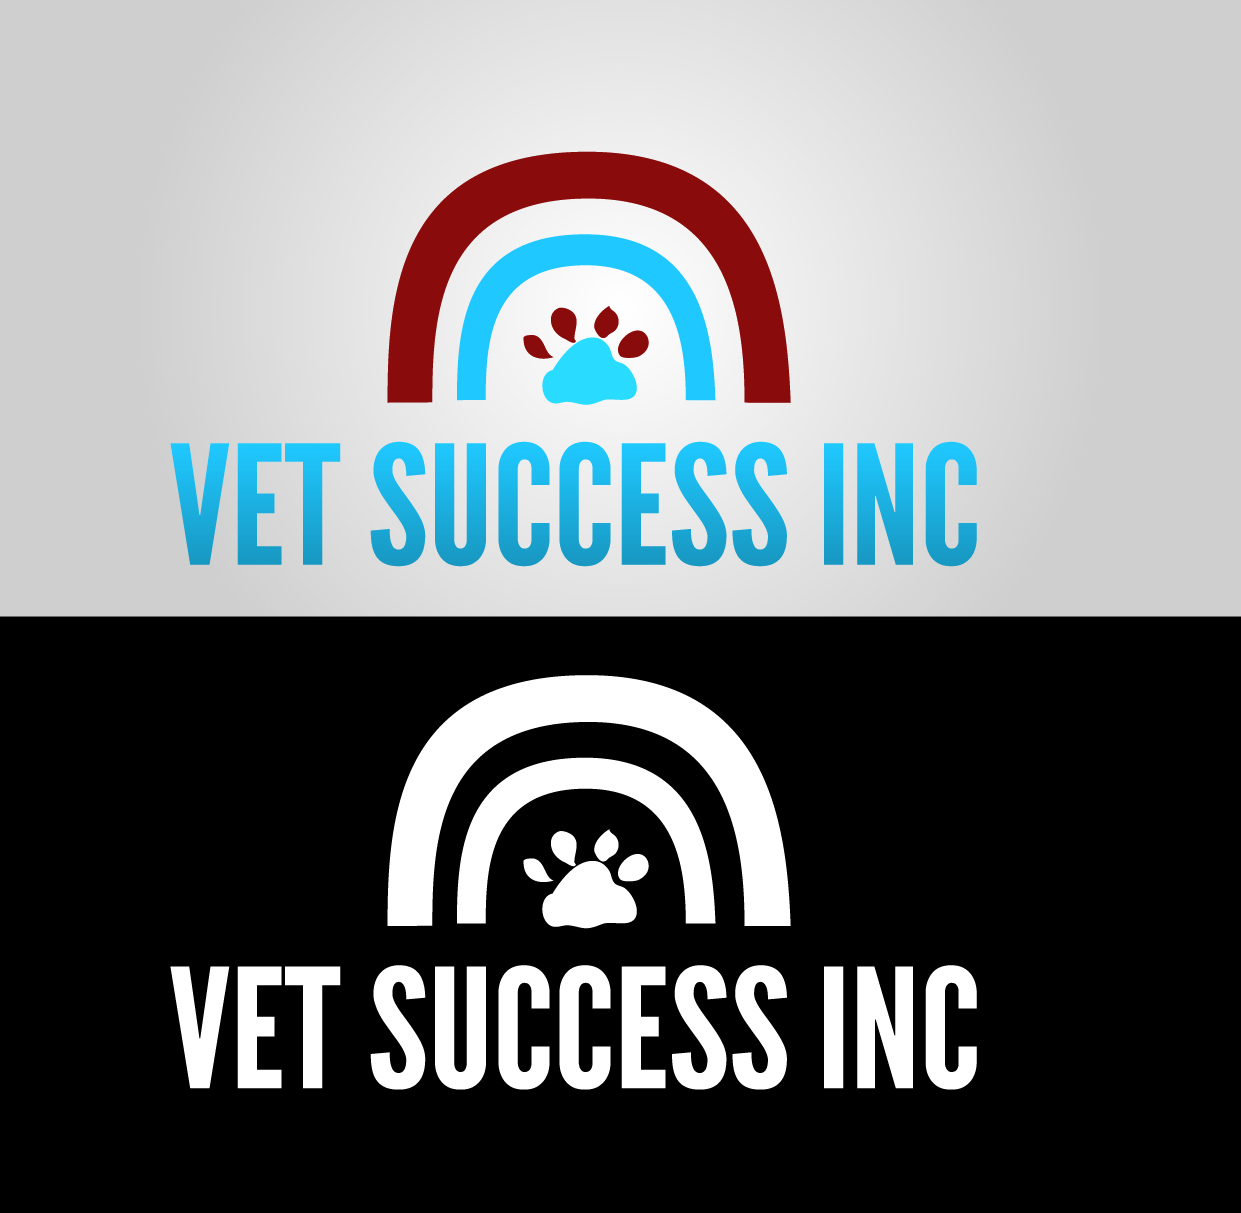 Logo Design by mediaproductionart - Entry No. 99 in the Logo Design Contest Imaginative Logo Design for Vet Success Inc..